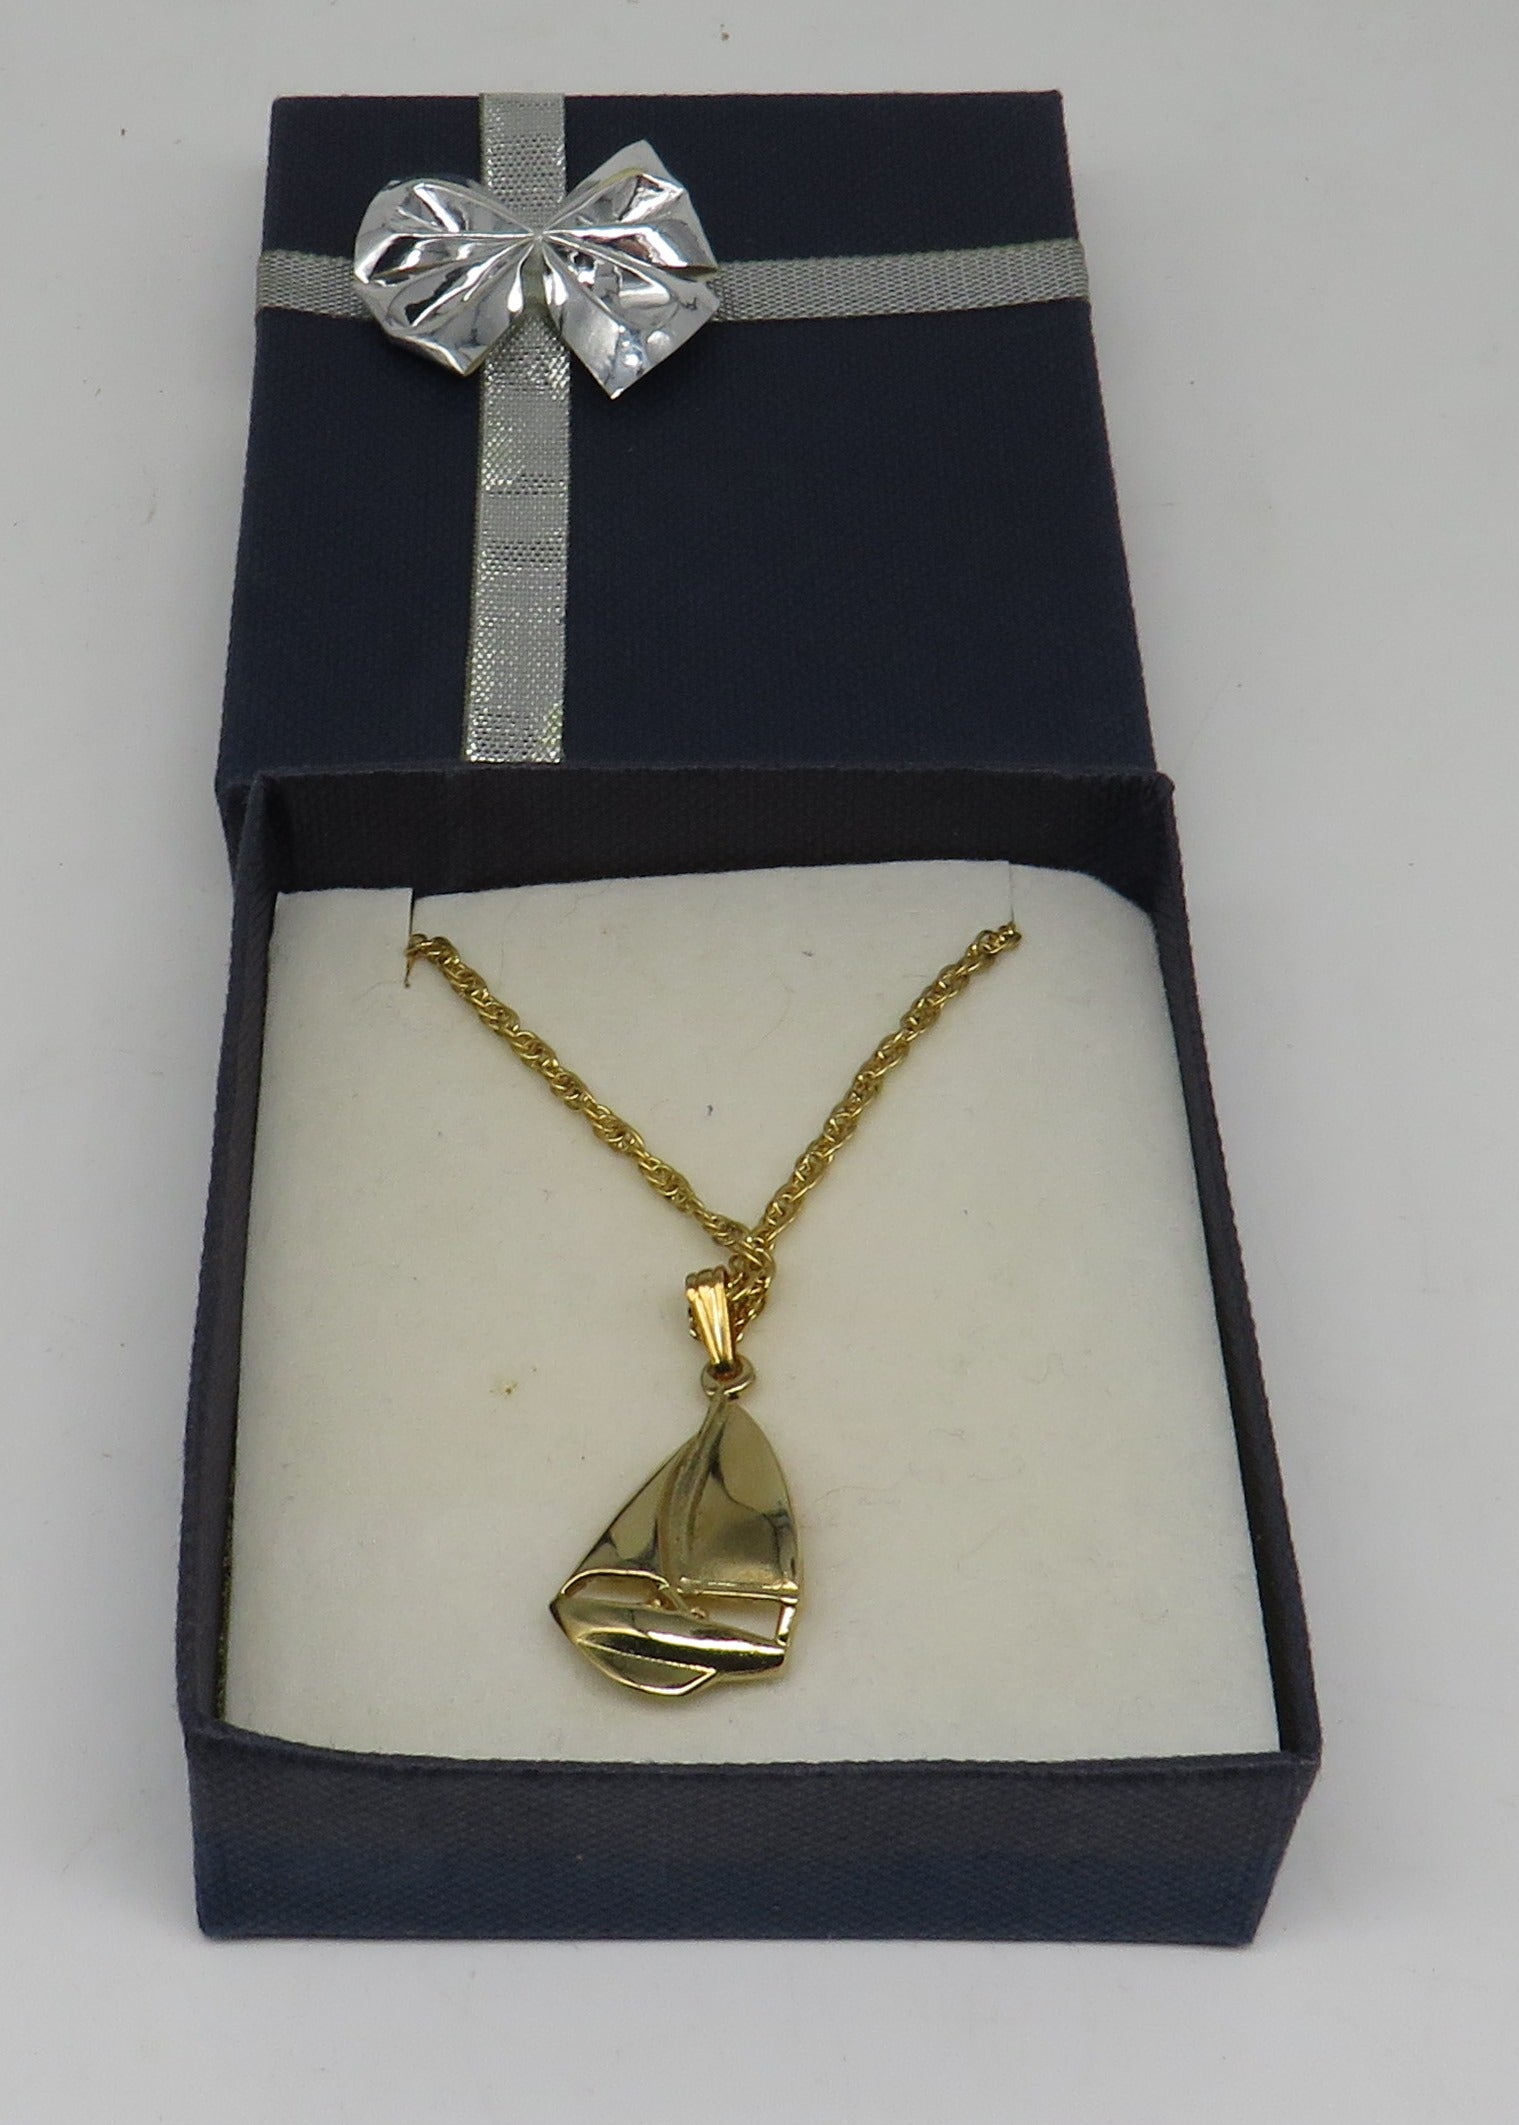 Gold Sailboat (Sloop) Necklace 20